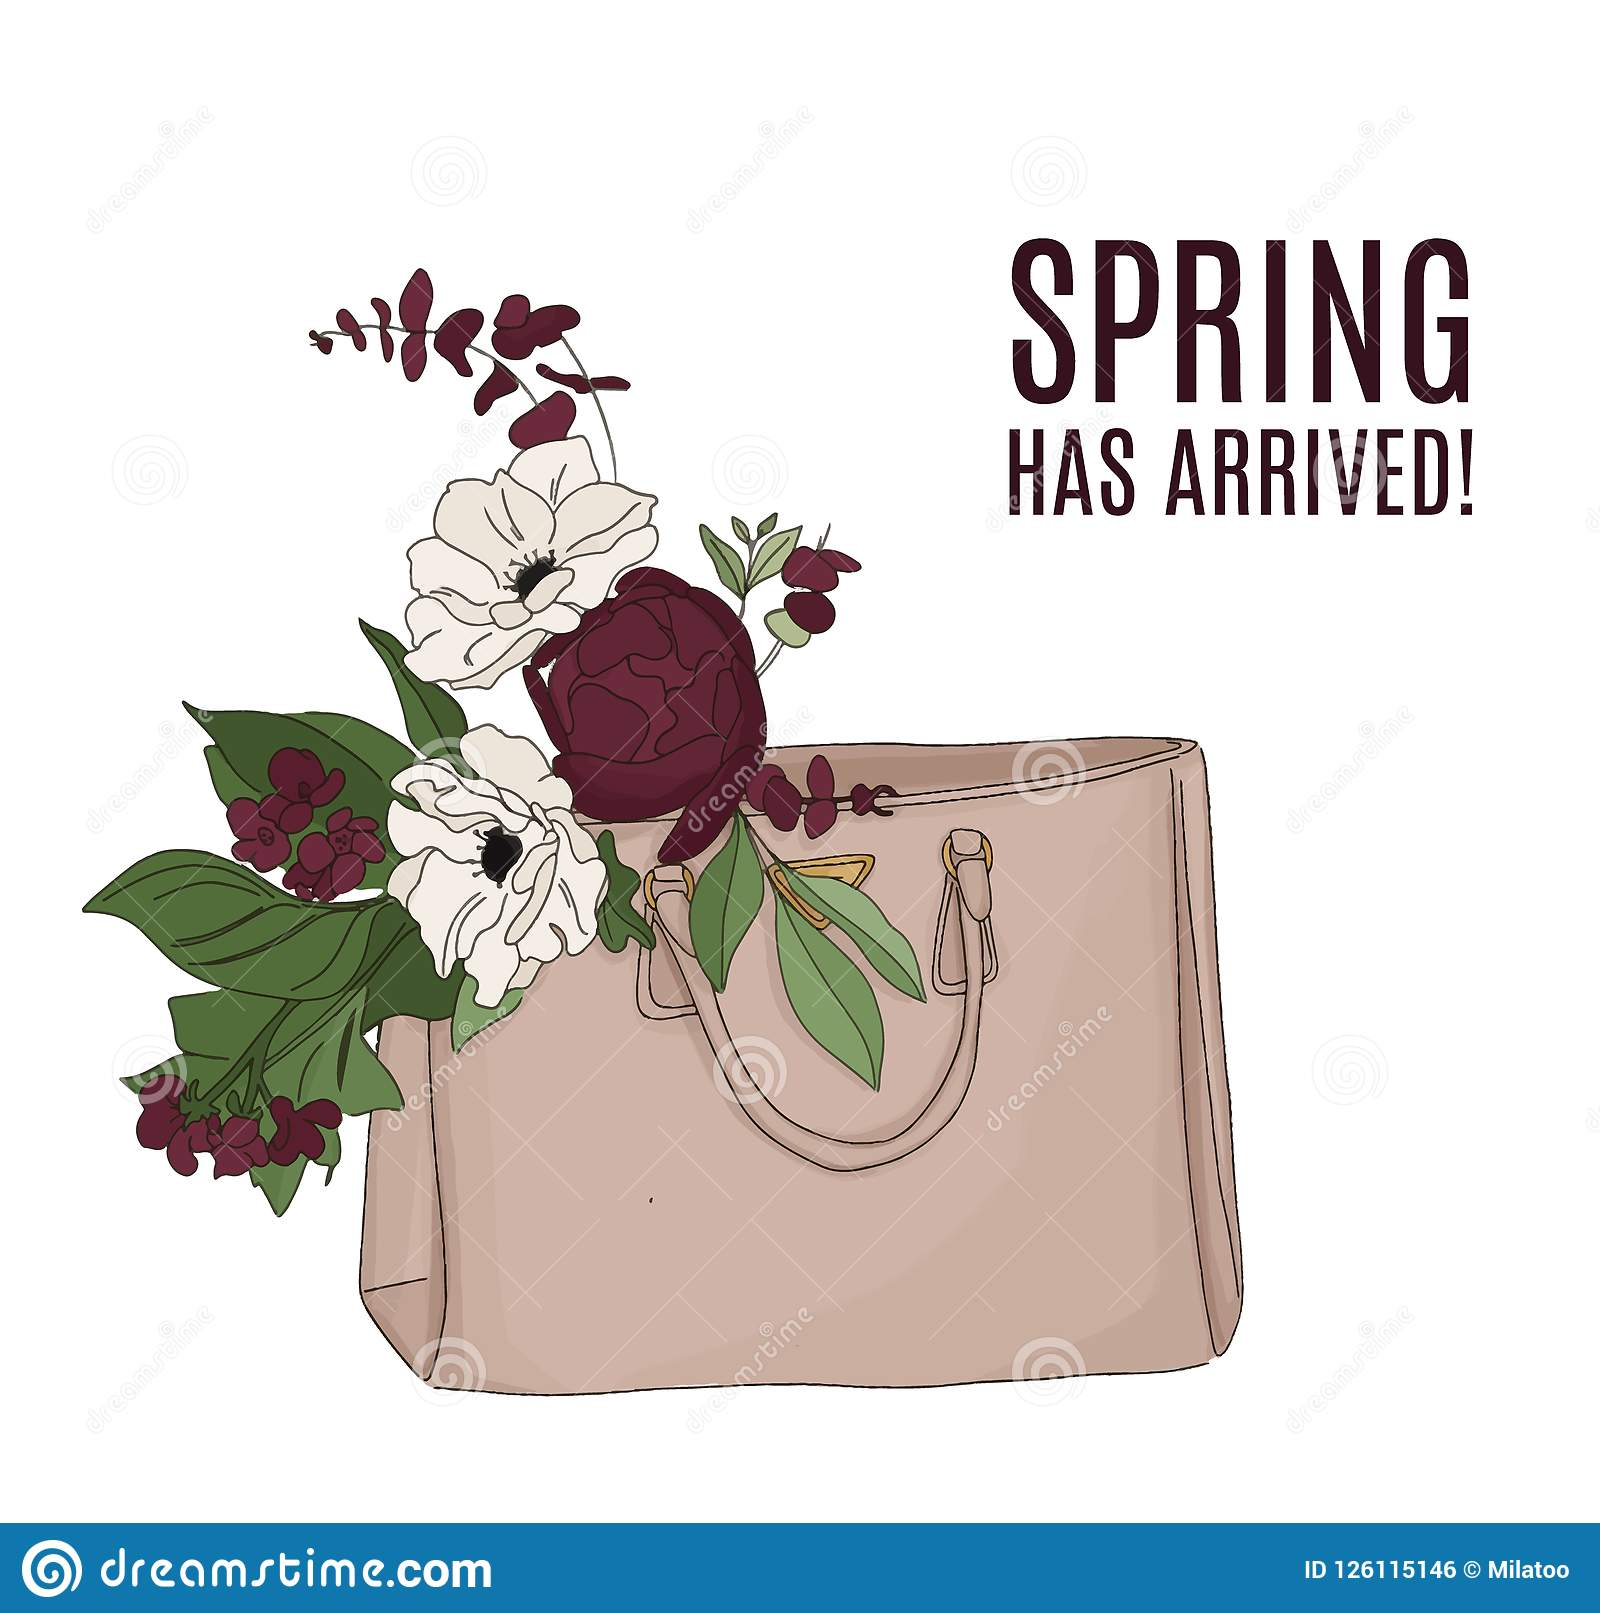 Fashion illustration: luxury bag full of flowers. Beautiful floral composition, spring text. Quote beauty art with